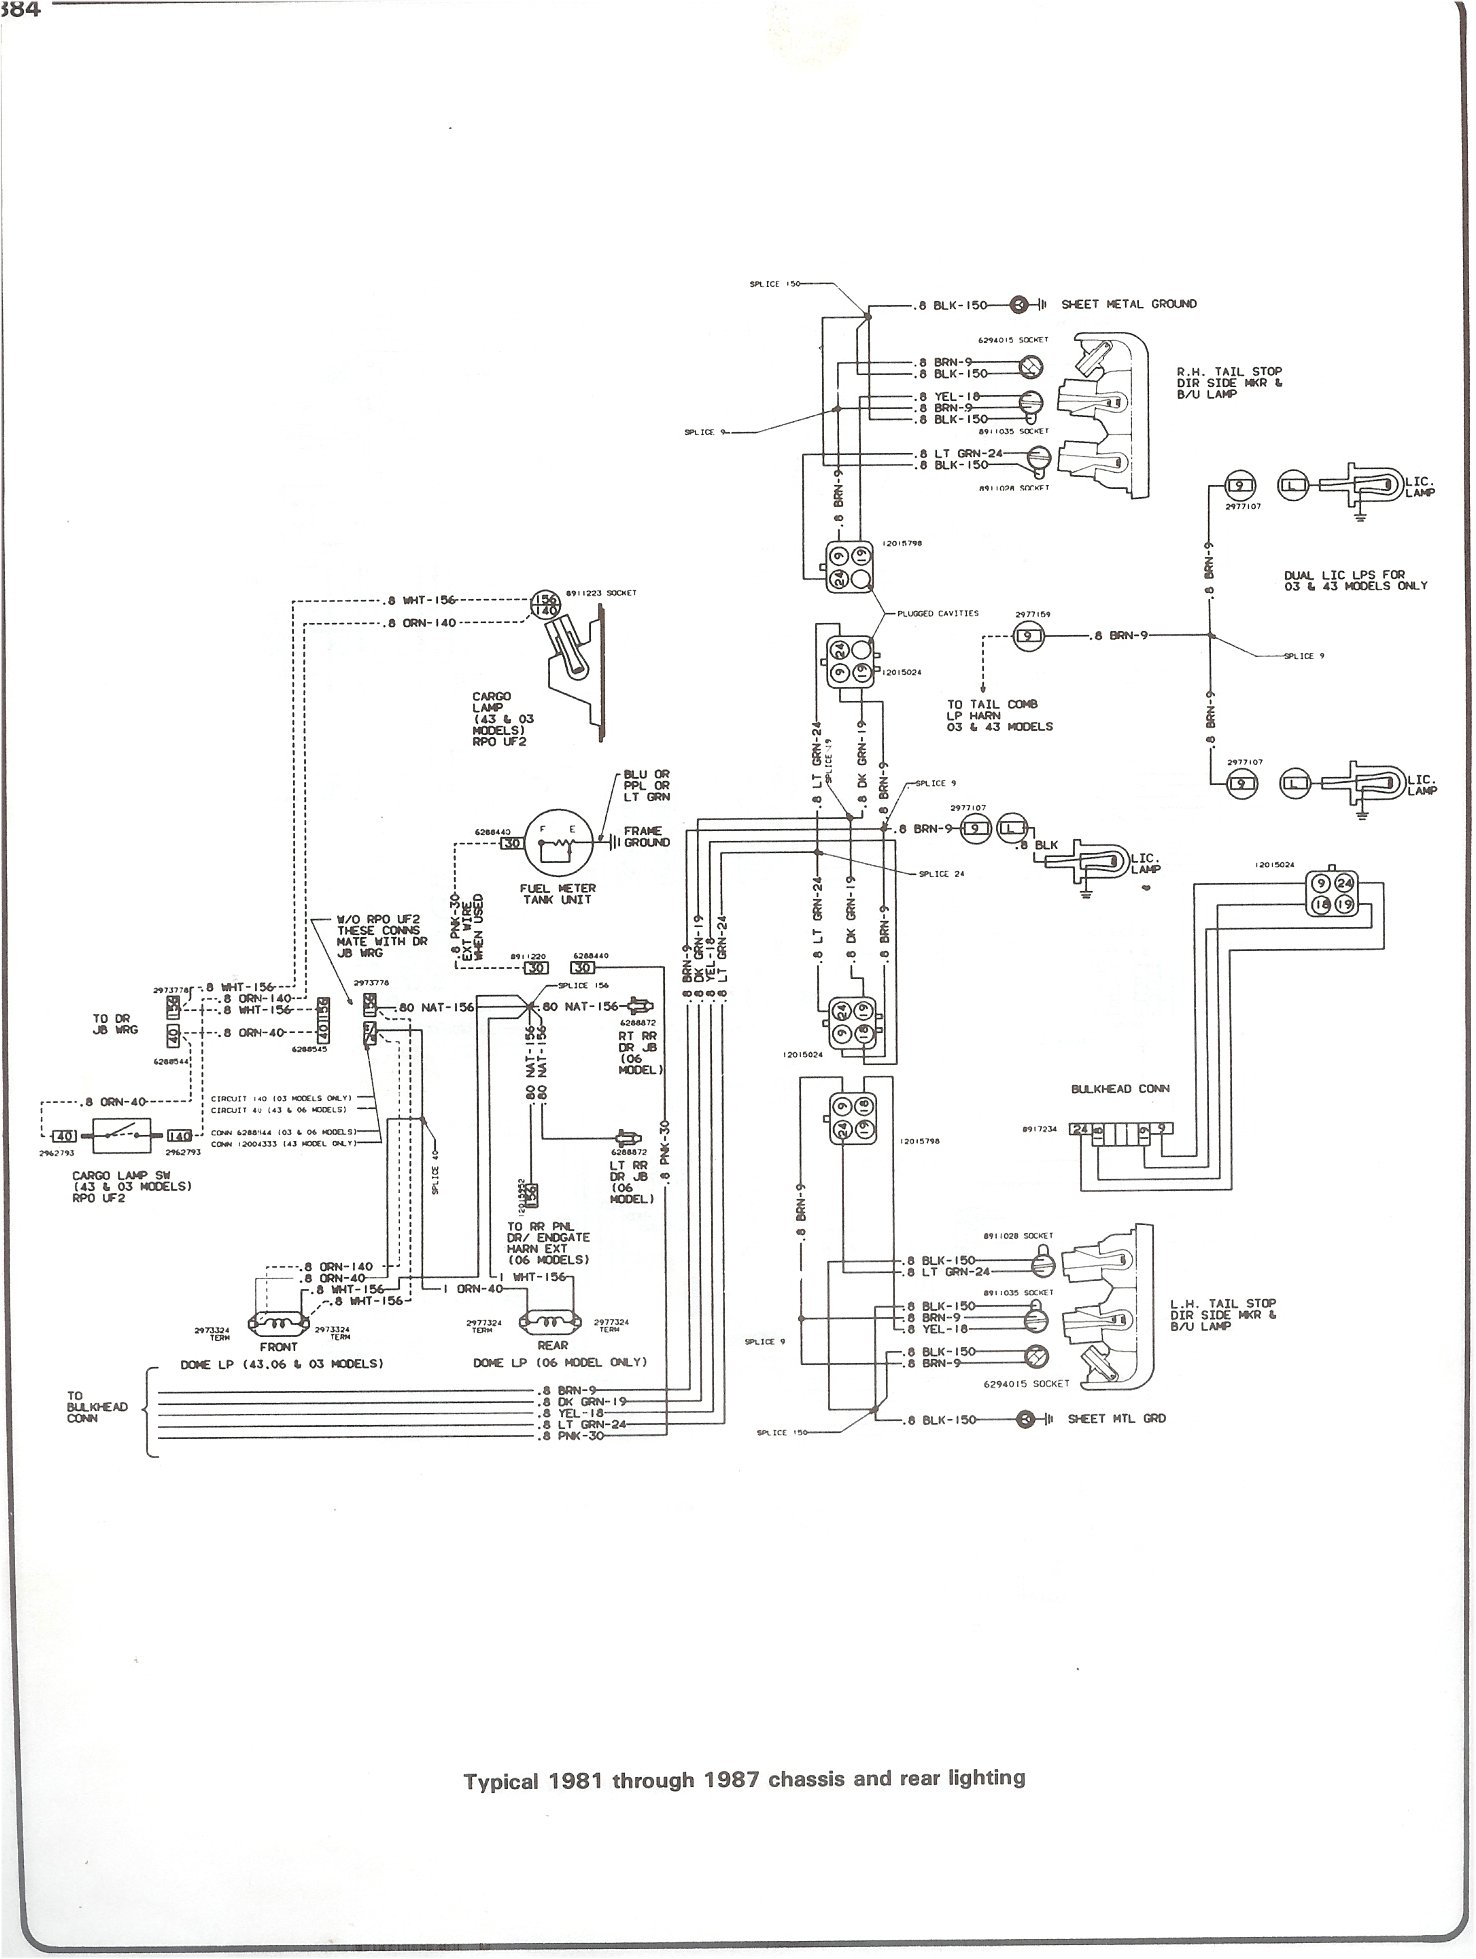 complete 73 87 wiring diagrams 1995 chevy lumina fuse box diagram 81 87 chassis and rear lighting